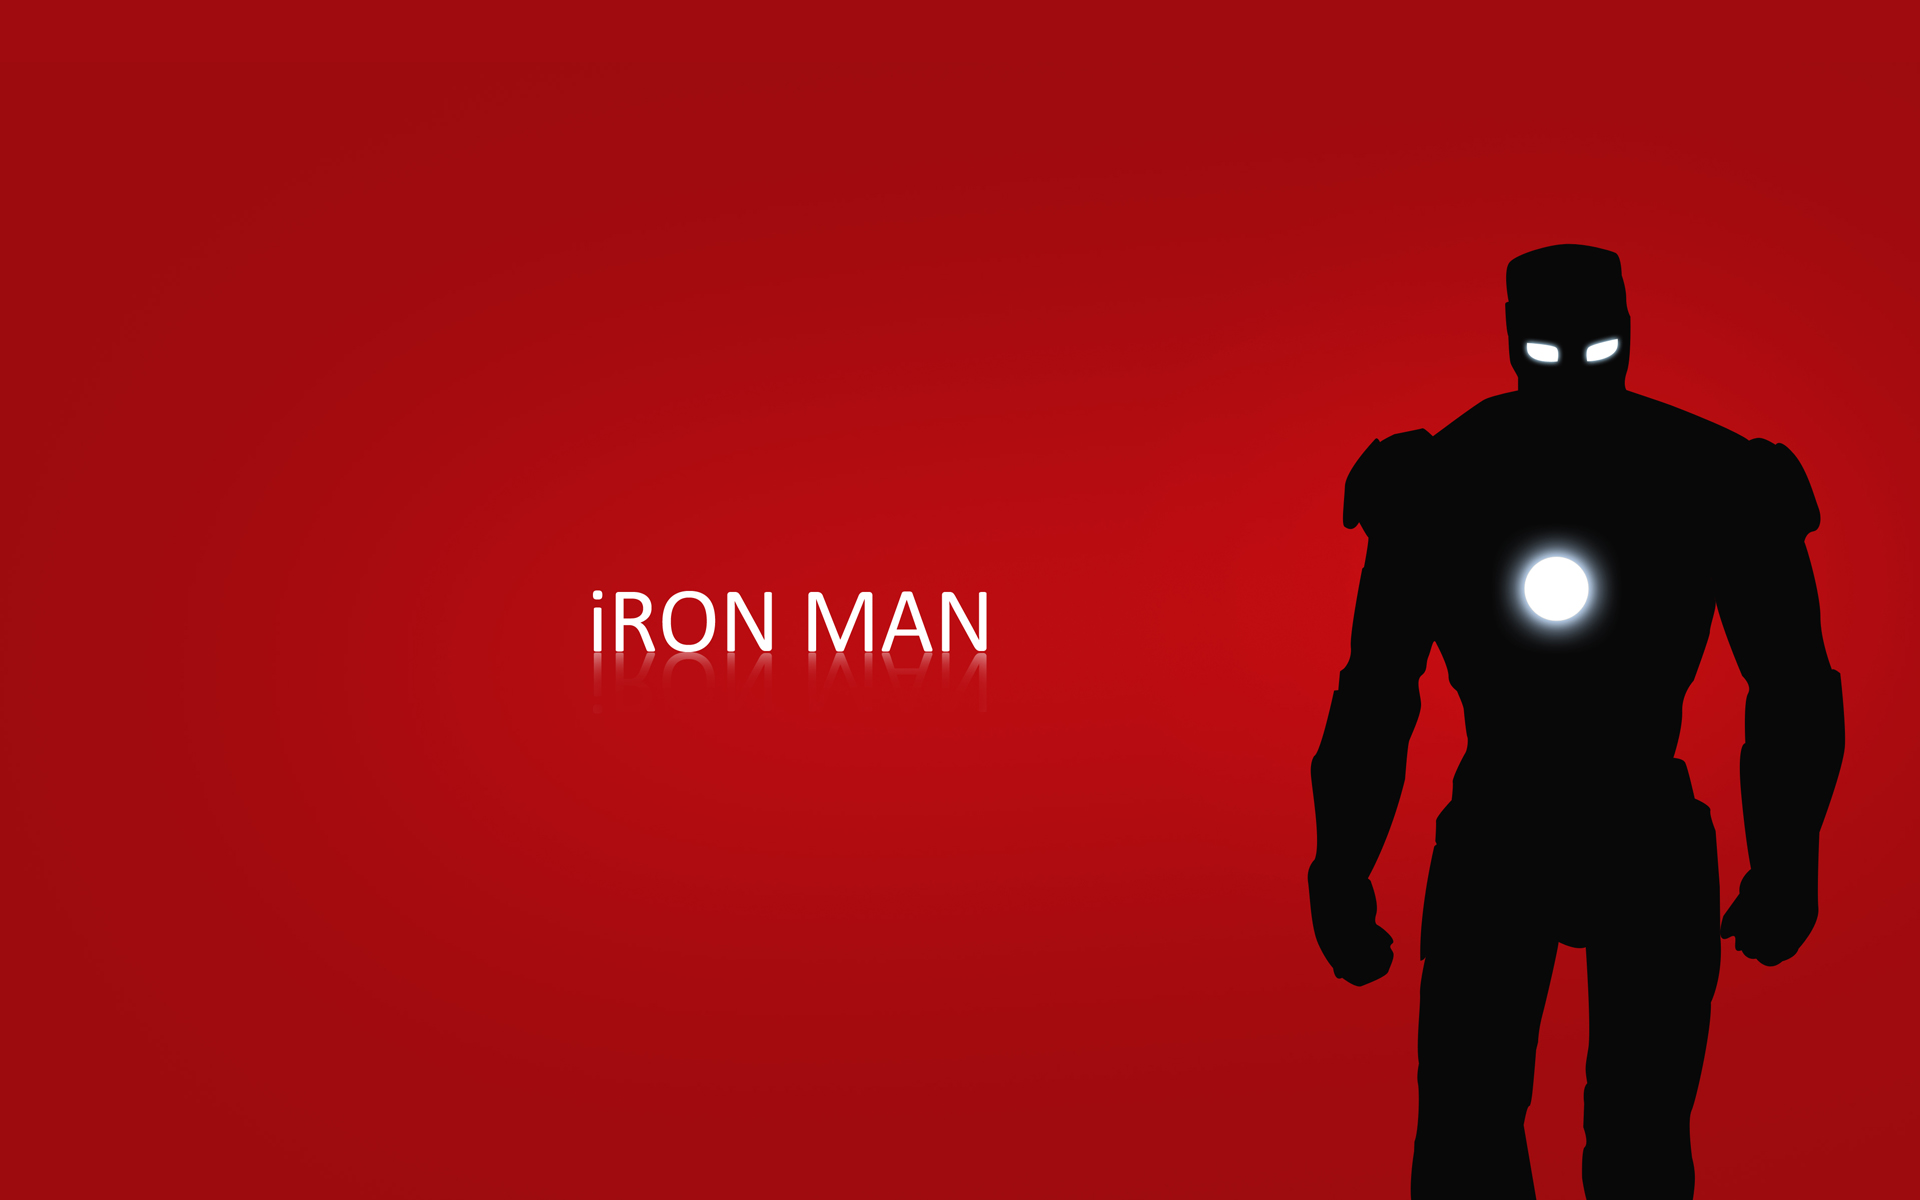 iRON MAN by TheSaladMan